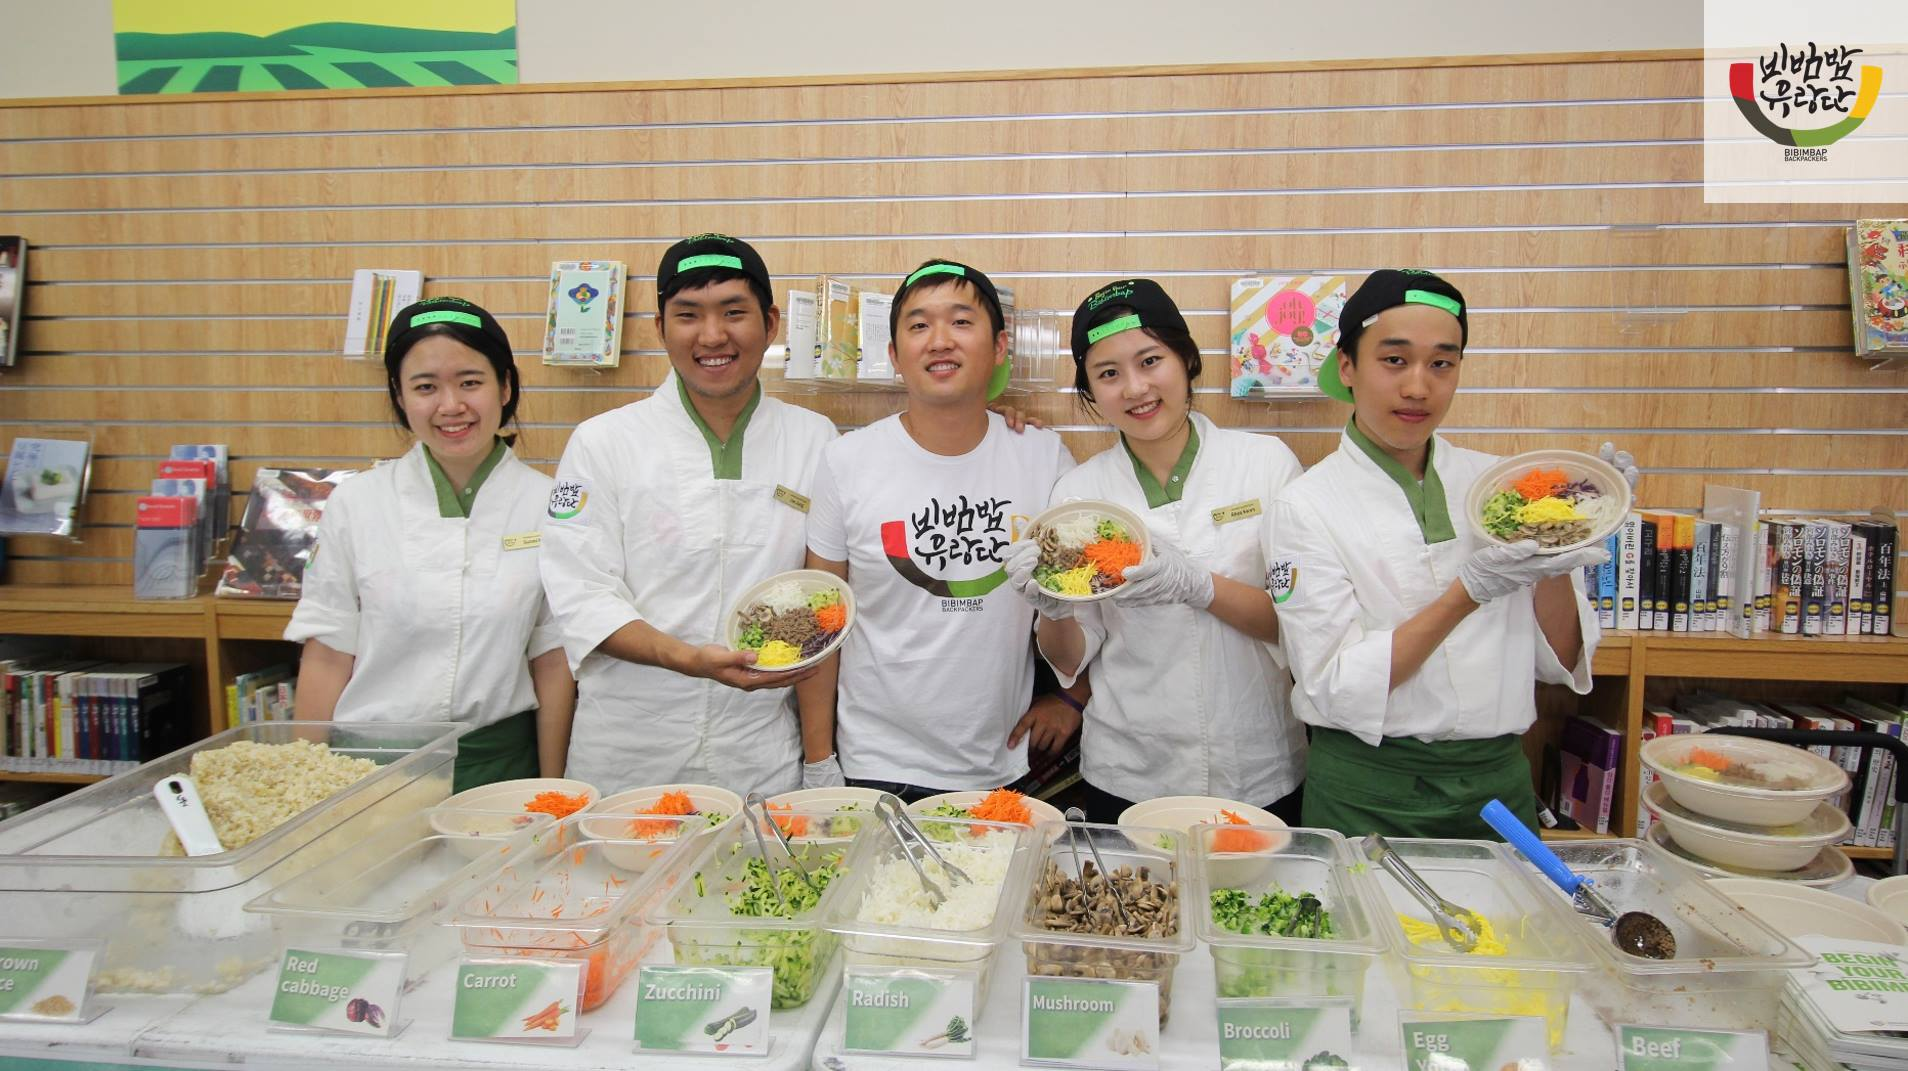 Formed in 2011, Bibimbap Backpackers has been spreading a healthy diet message by promoting bibimbap. (image: Bibimbap Backpackers)